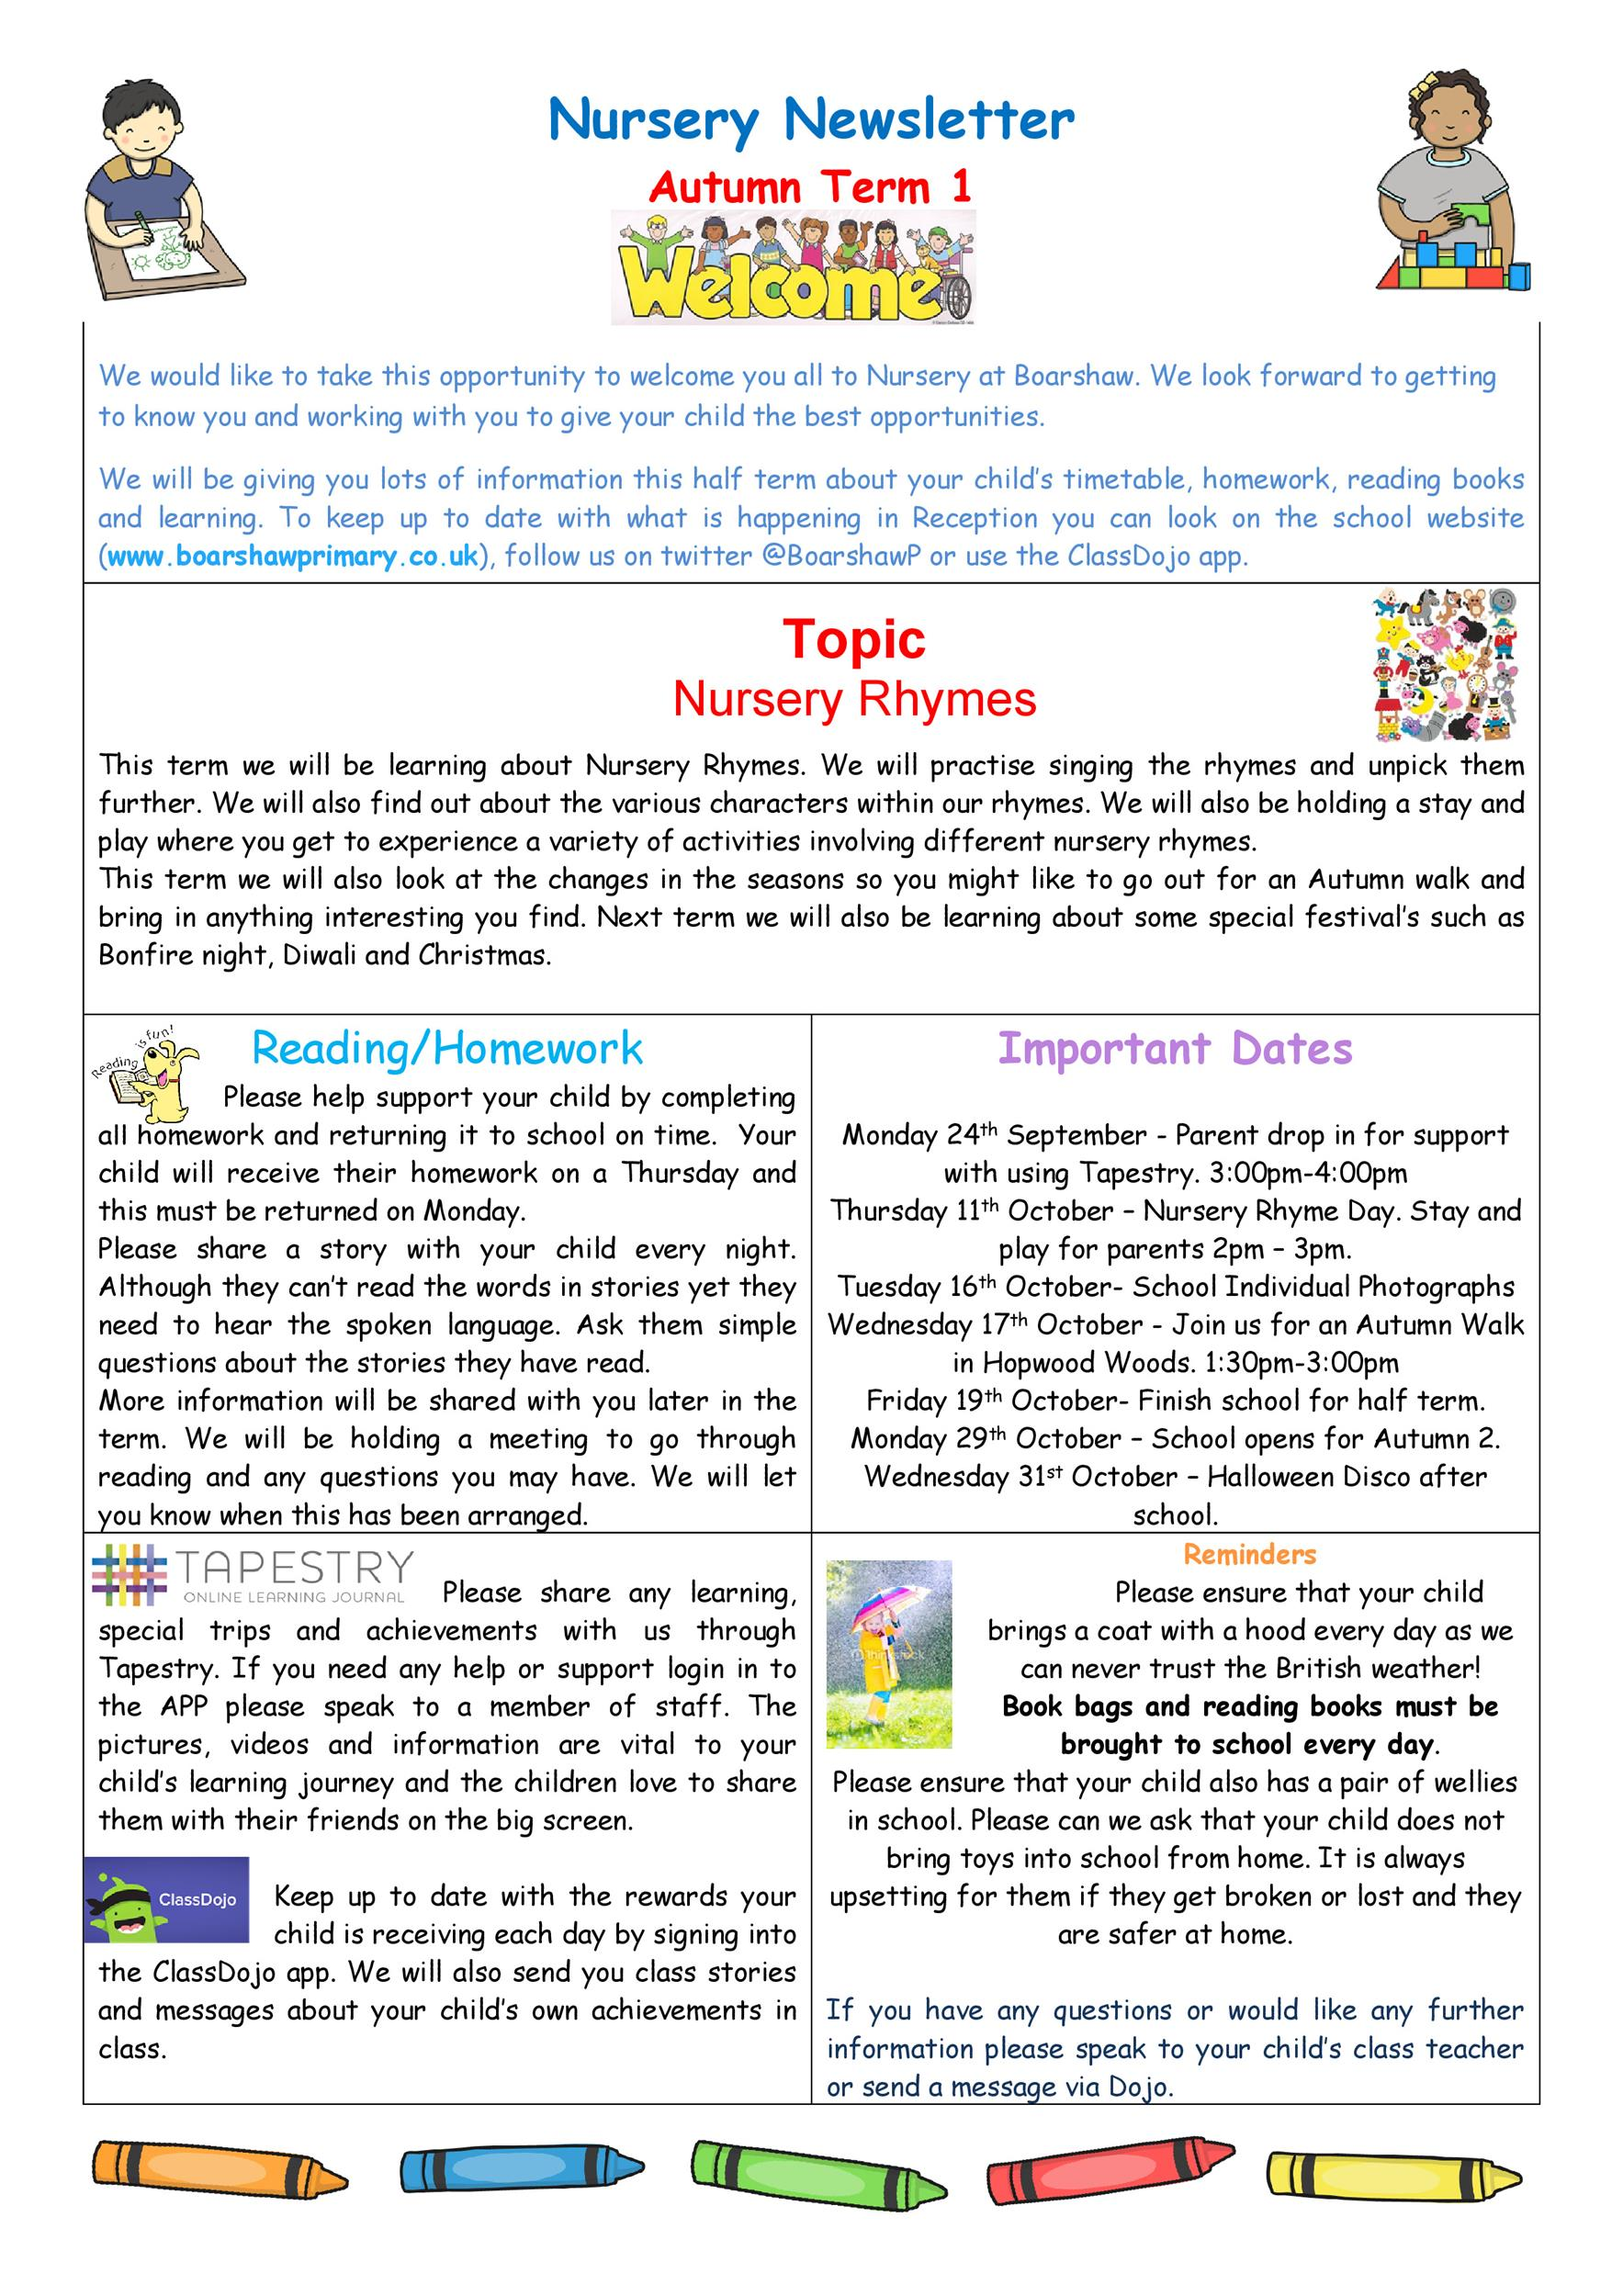 Free preschool newsletter template 06